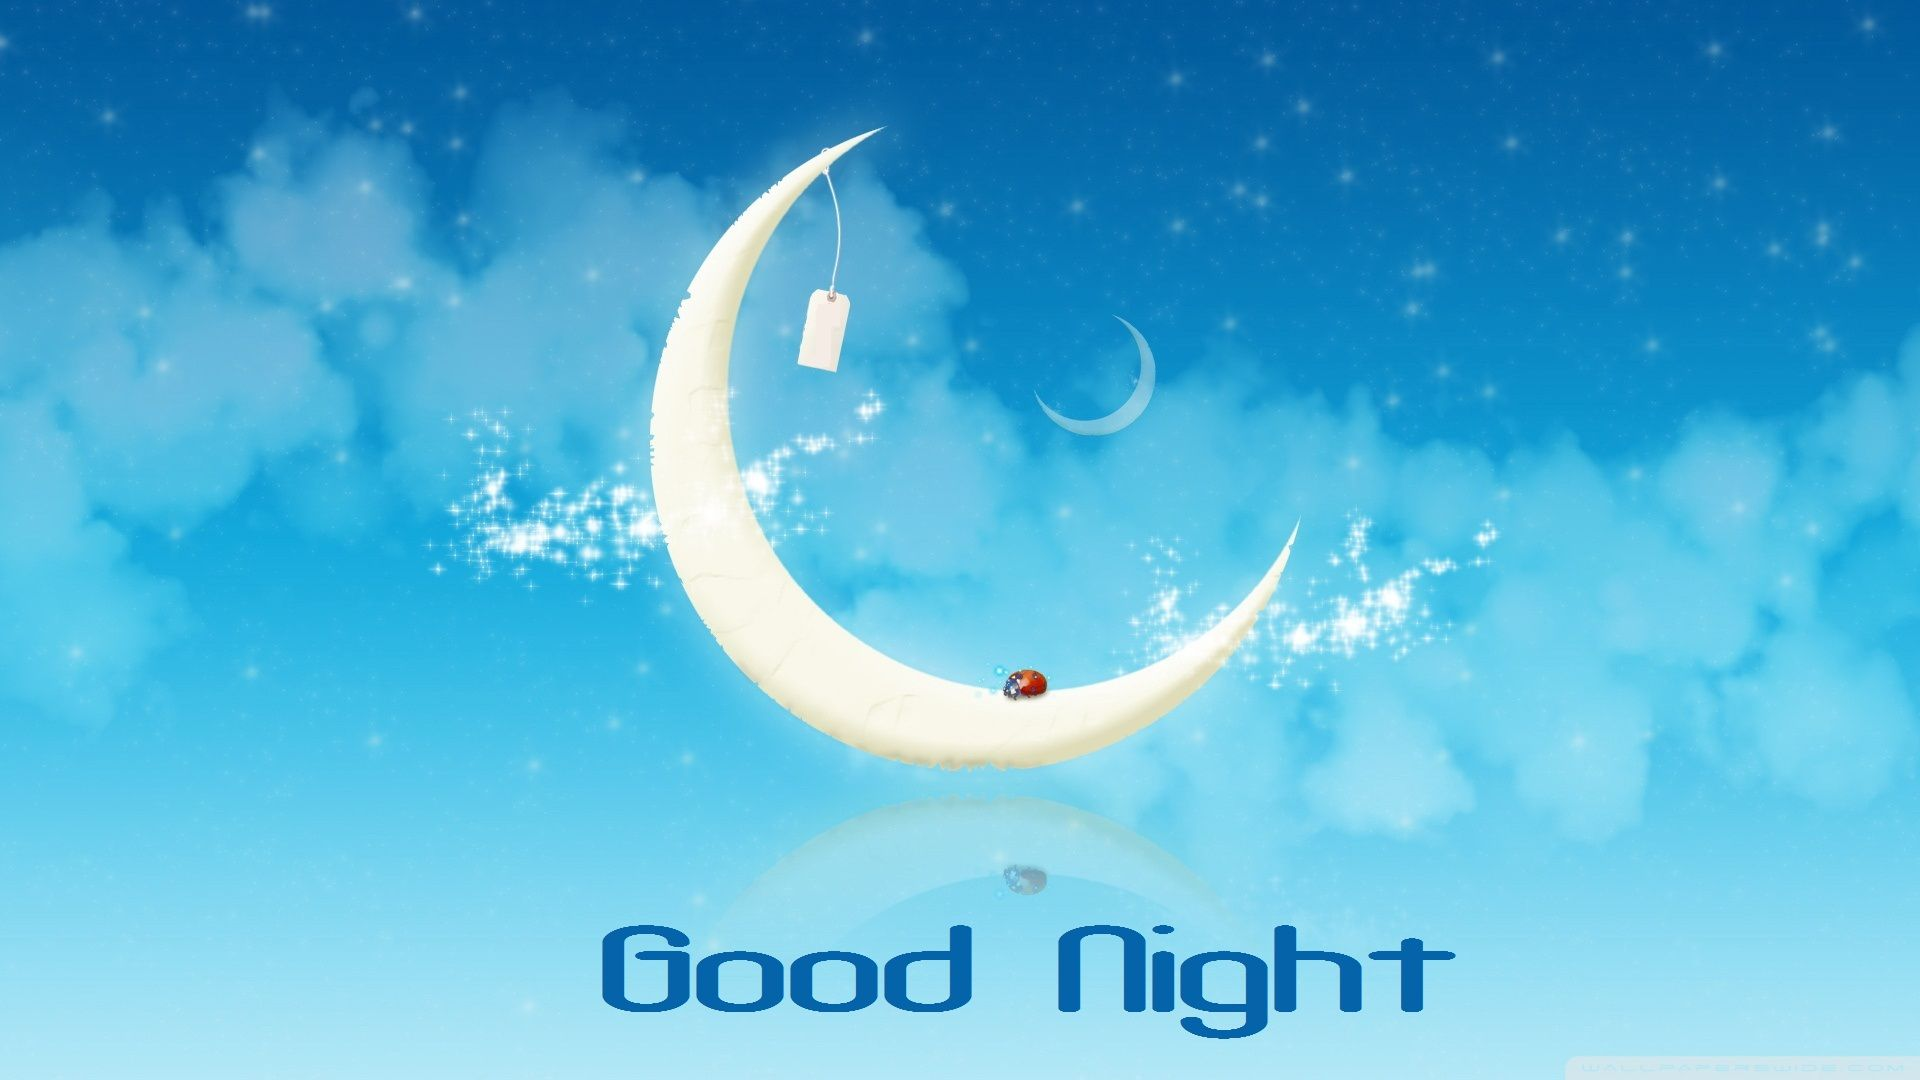 Good Night Images Free Download Good Night Wallpaper Good Night Moon Night Pictures 1080p good night sweet dreams images hd